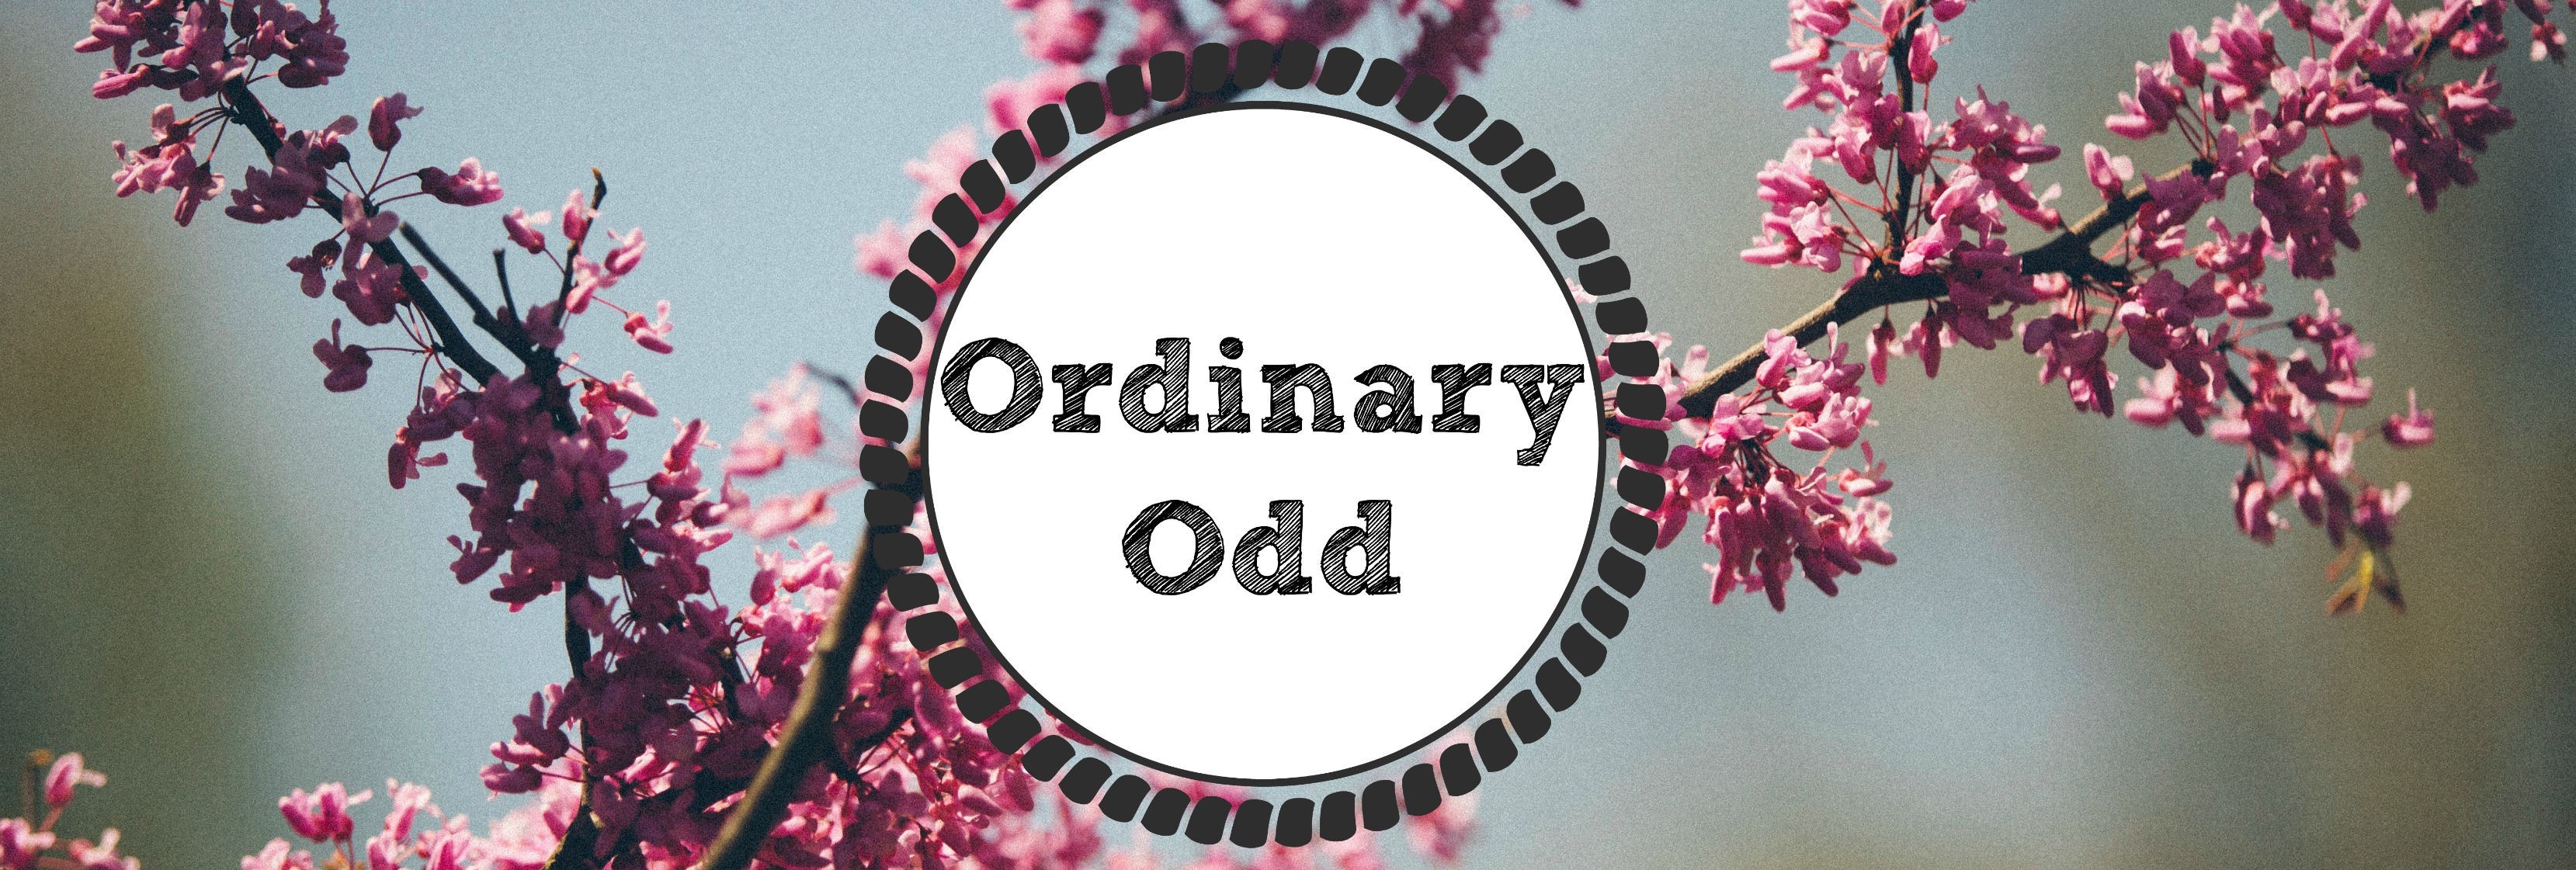 Ordinary Odd